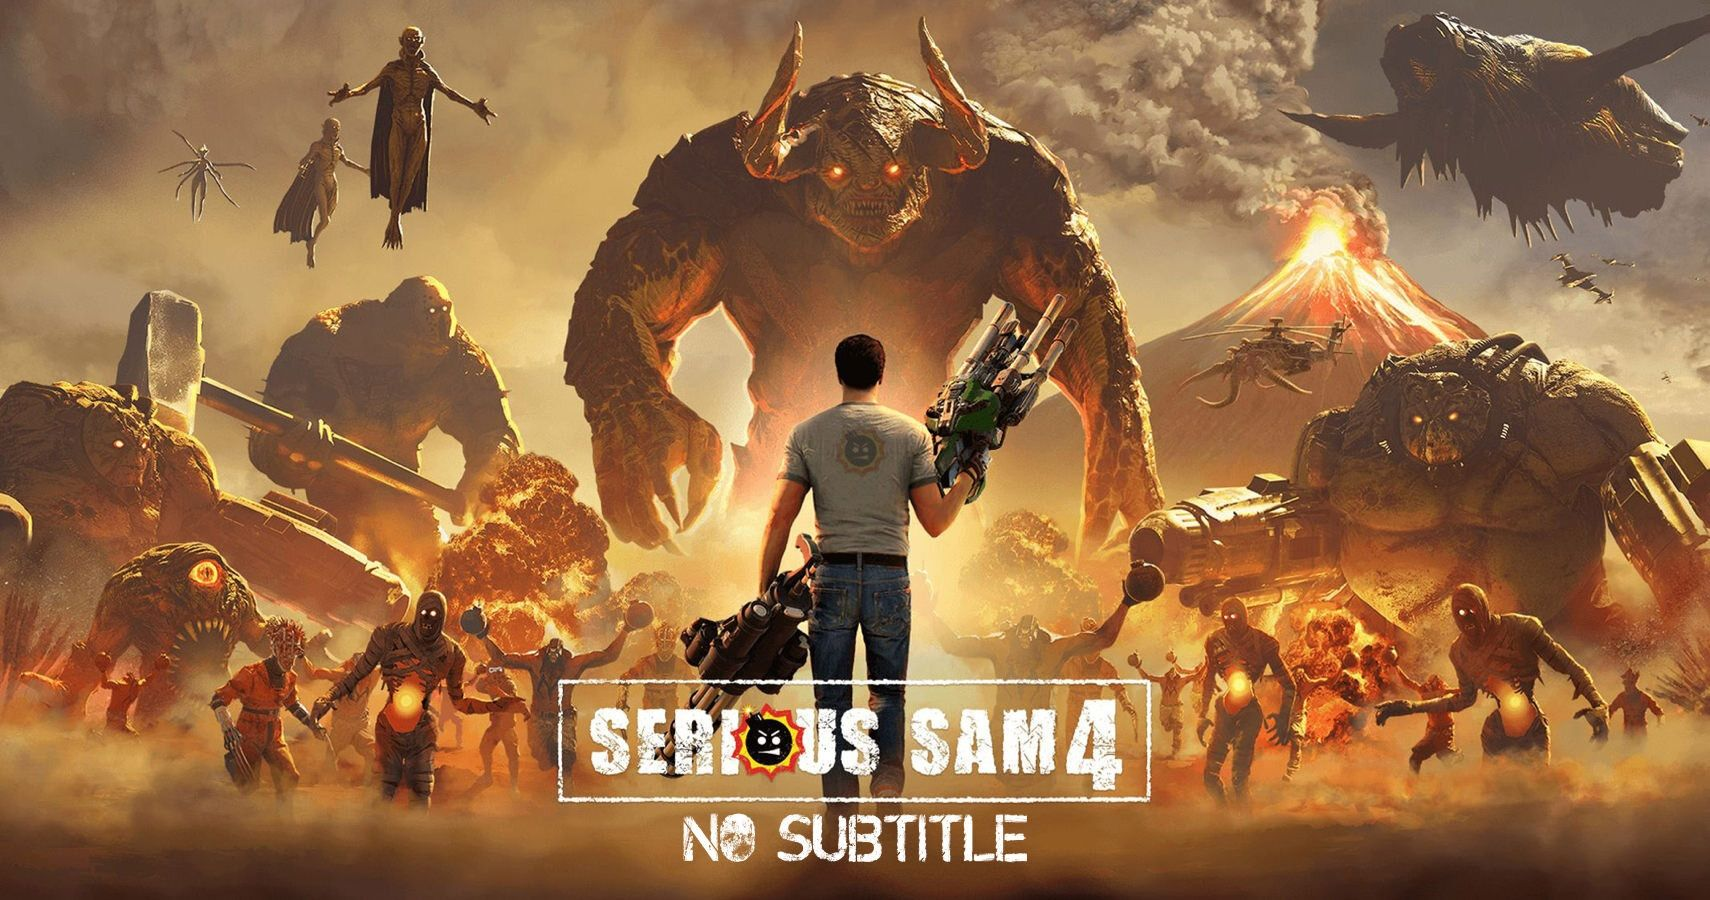 SS4 badass - Croteam Explains Why Serious Sam 4 Dropped The Planet Badass Subtitle